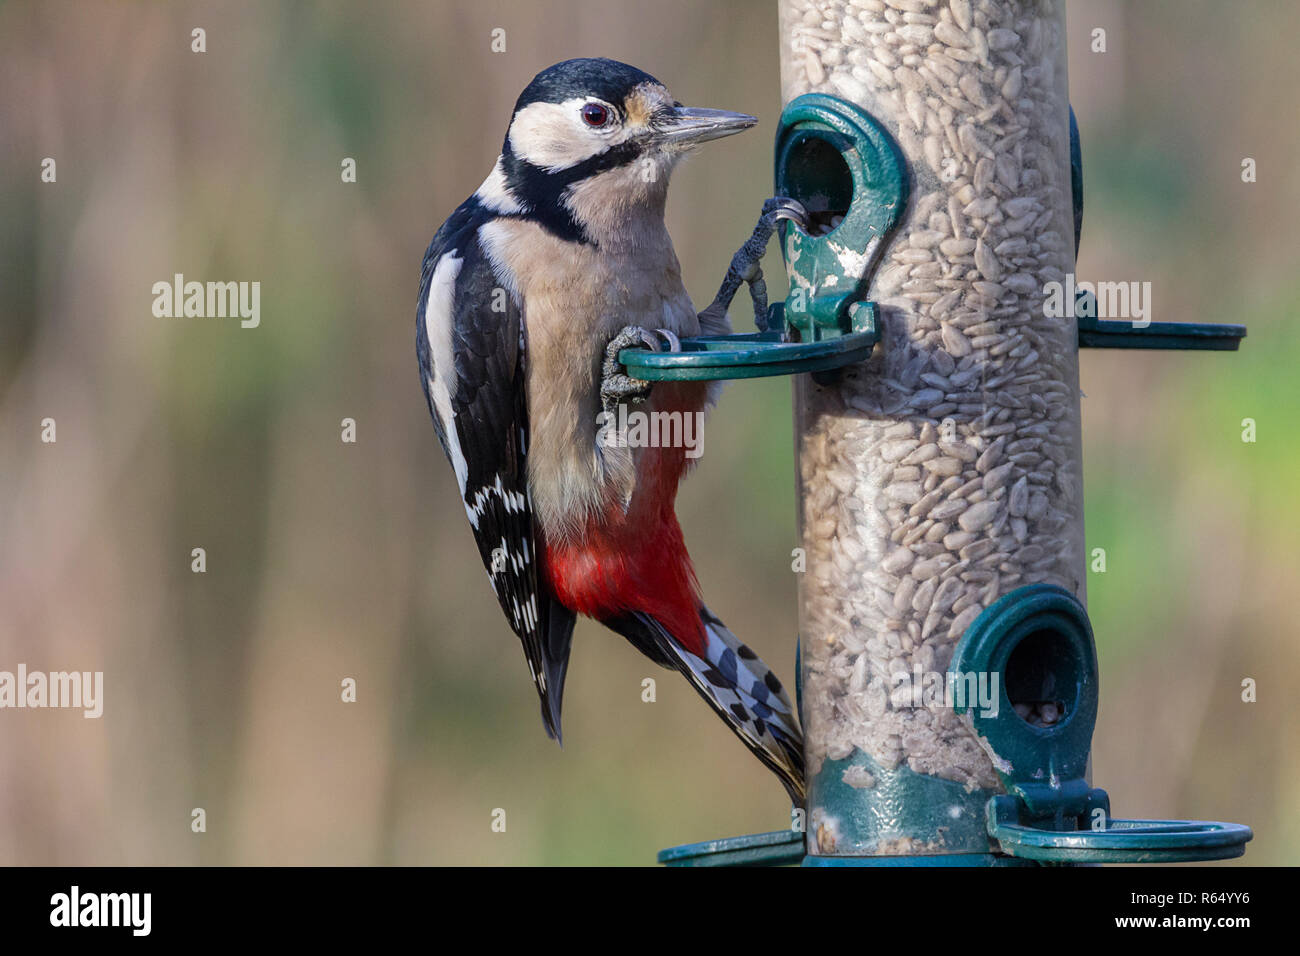 Great spotted woodpecker ( Dendrocopos major) feeding from a bird feeder on sunflower seed hearts. Black and white plumage with crimson under tail. - Stock Image